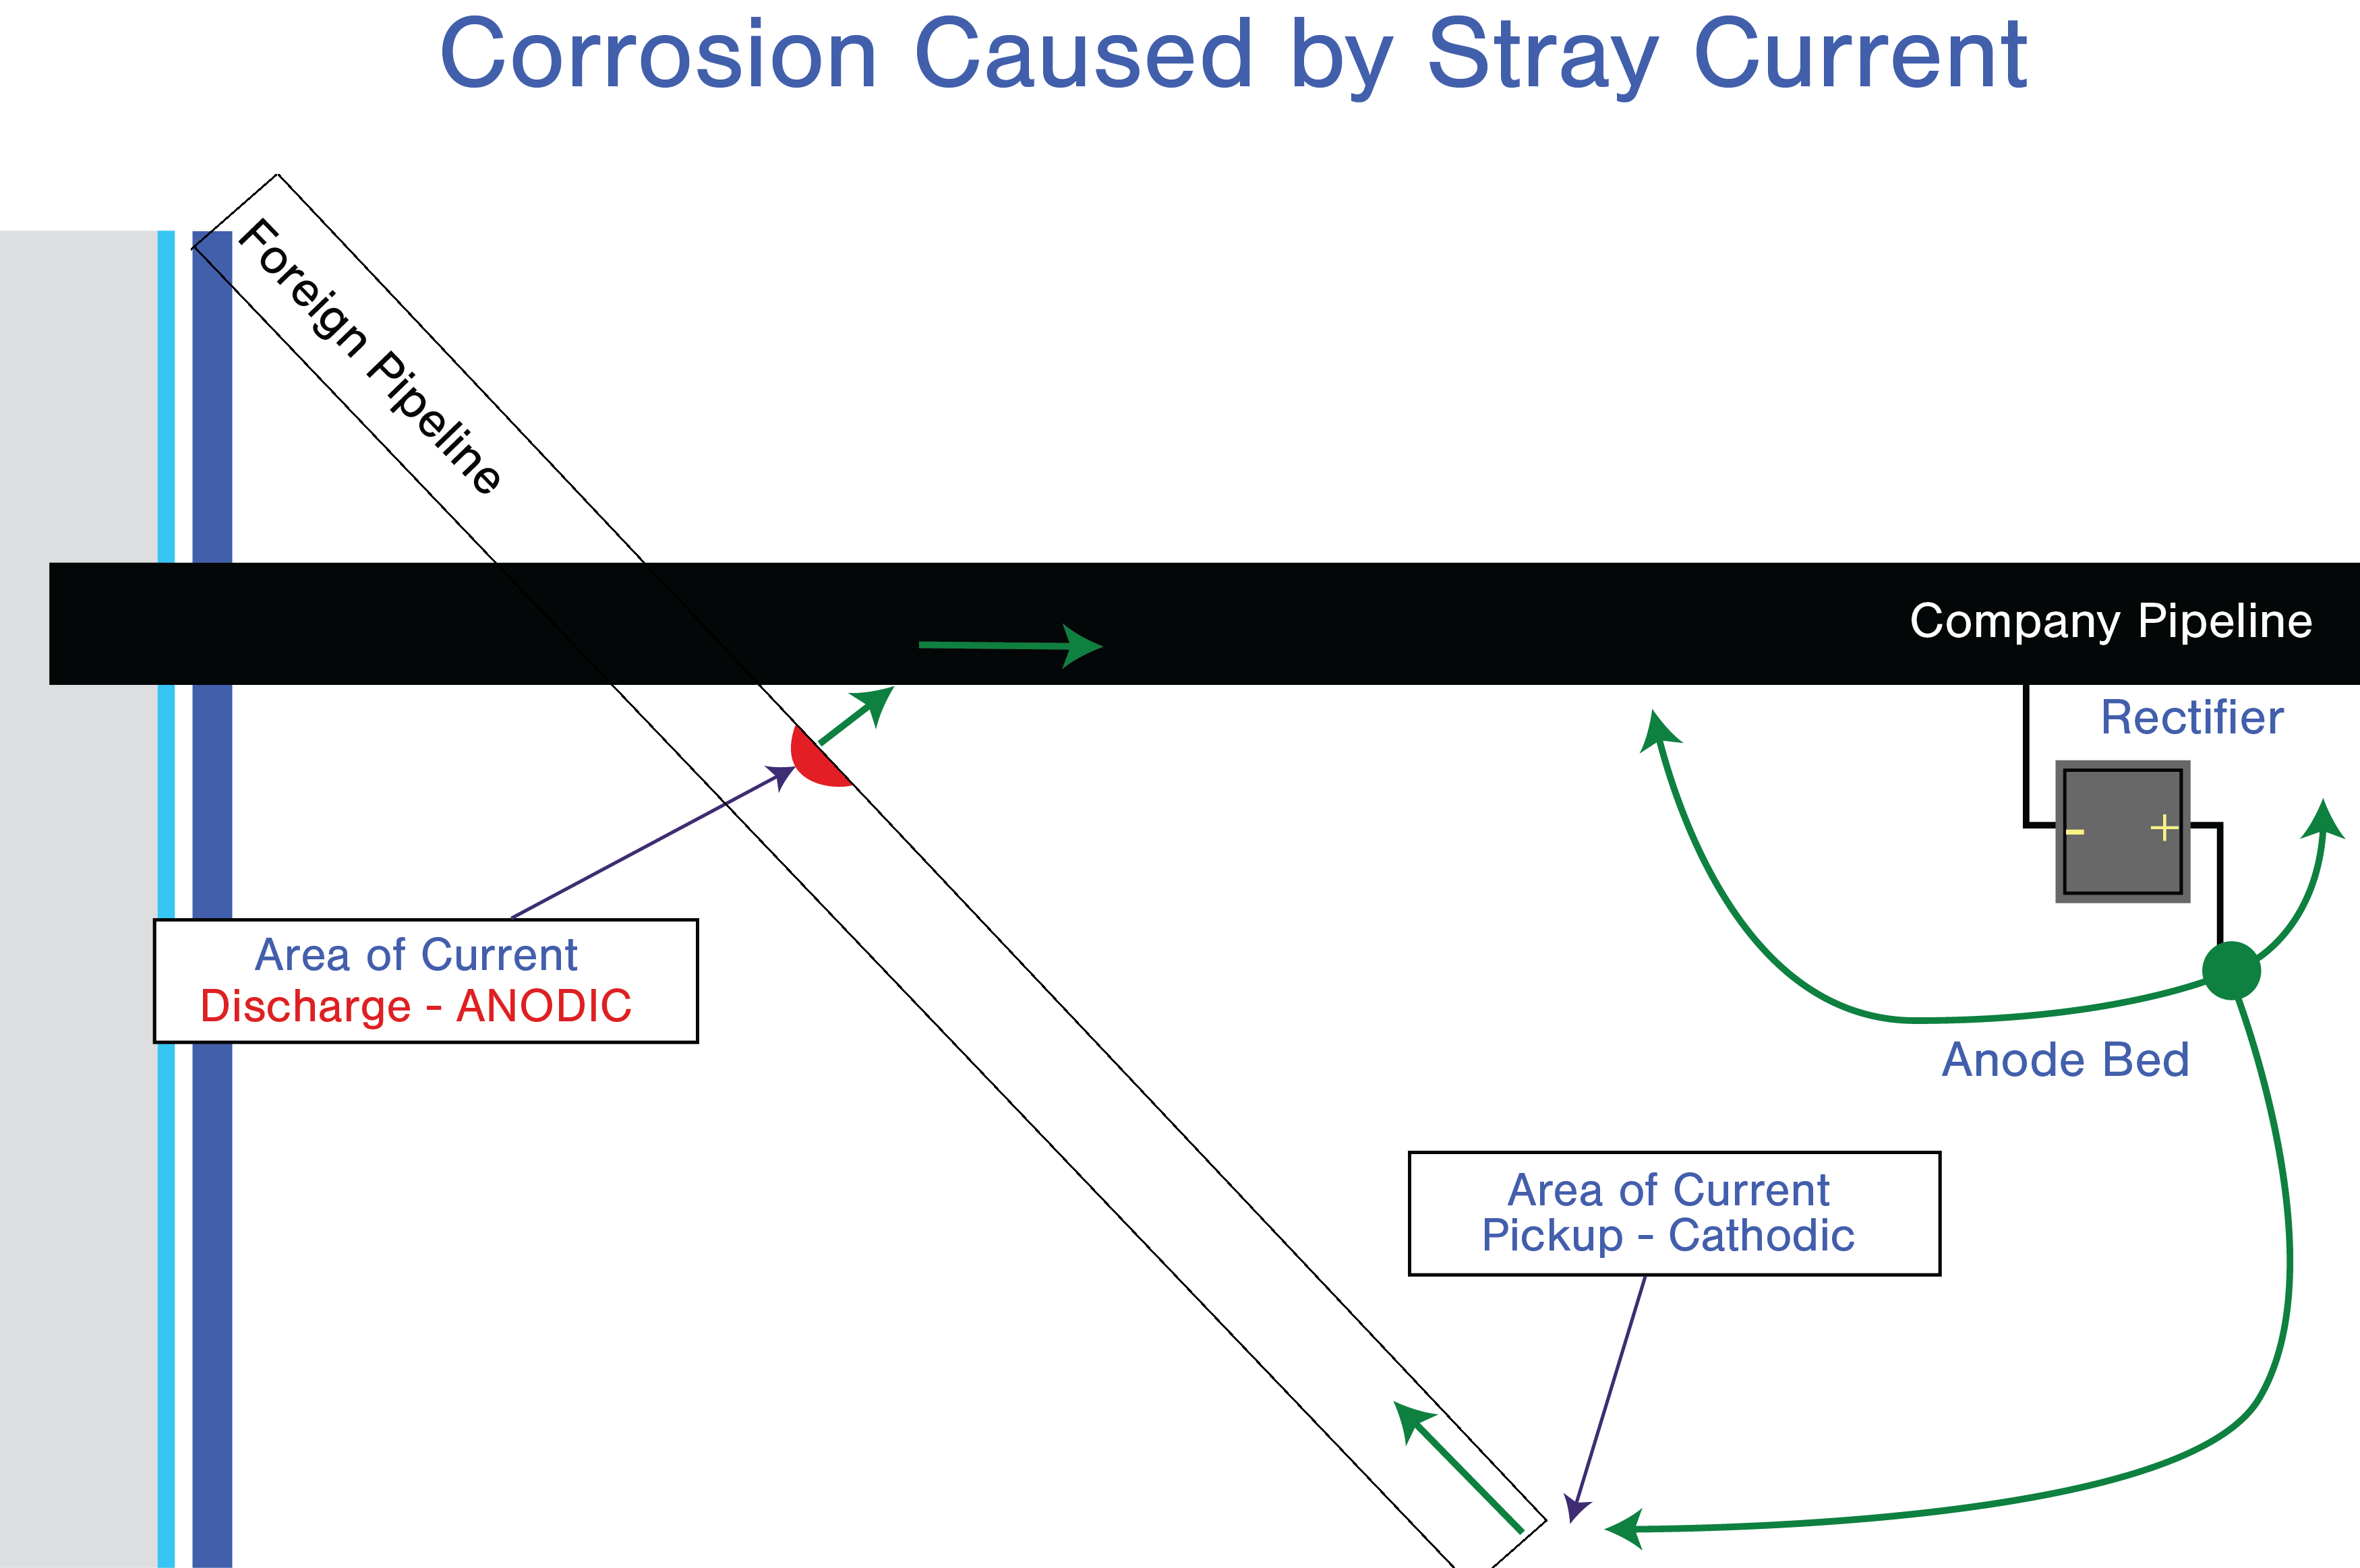 Figure 1. Diagram of stray current corrosion.